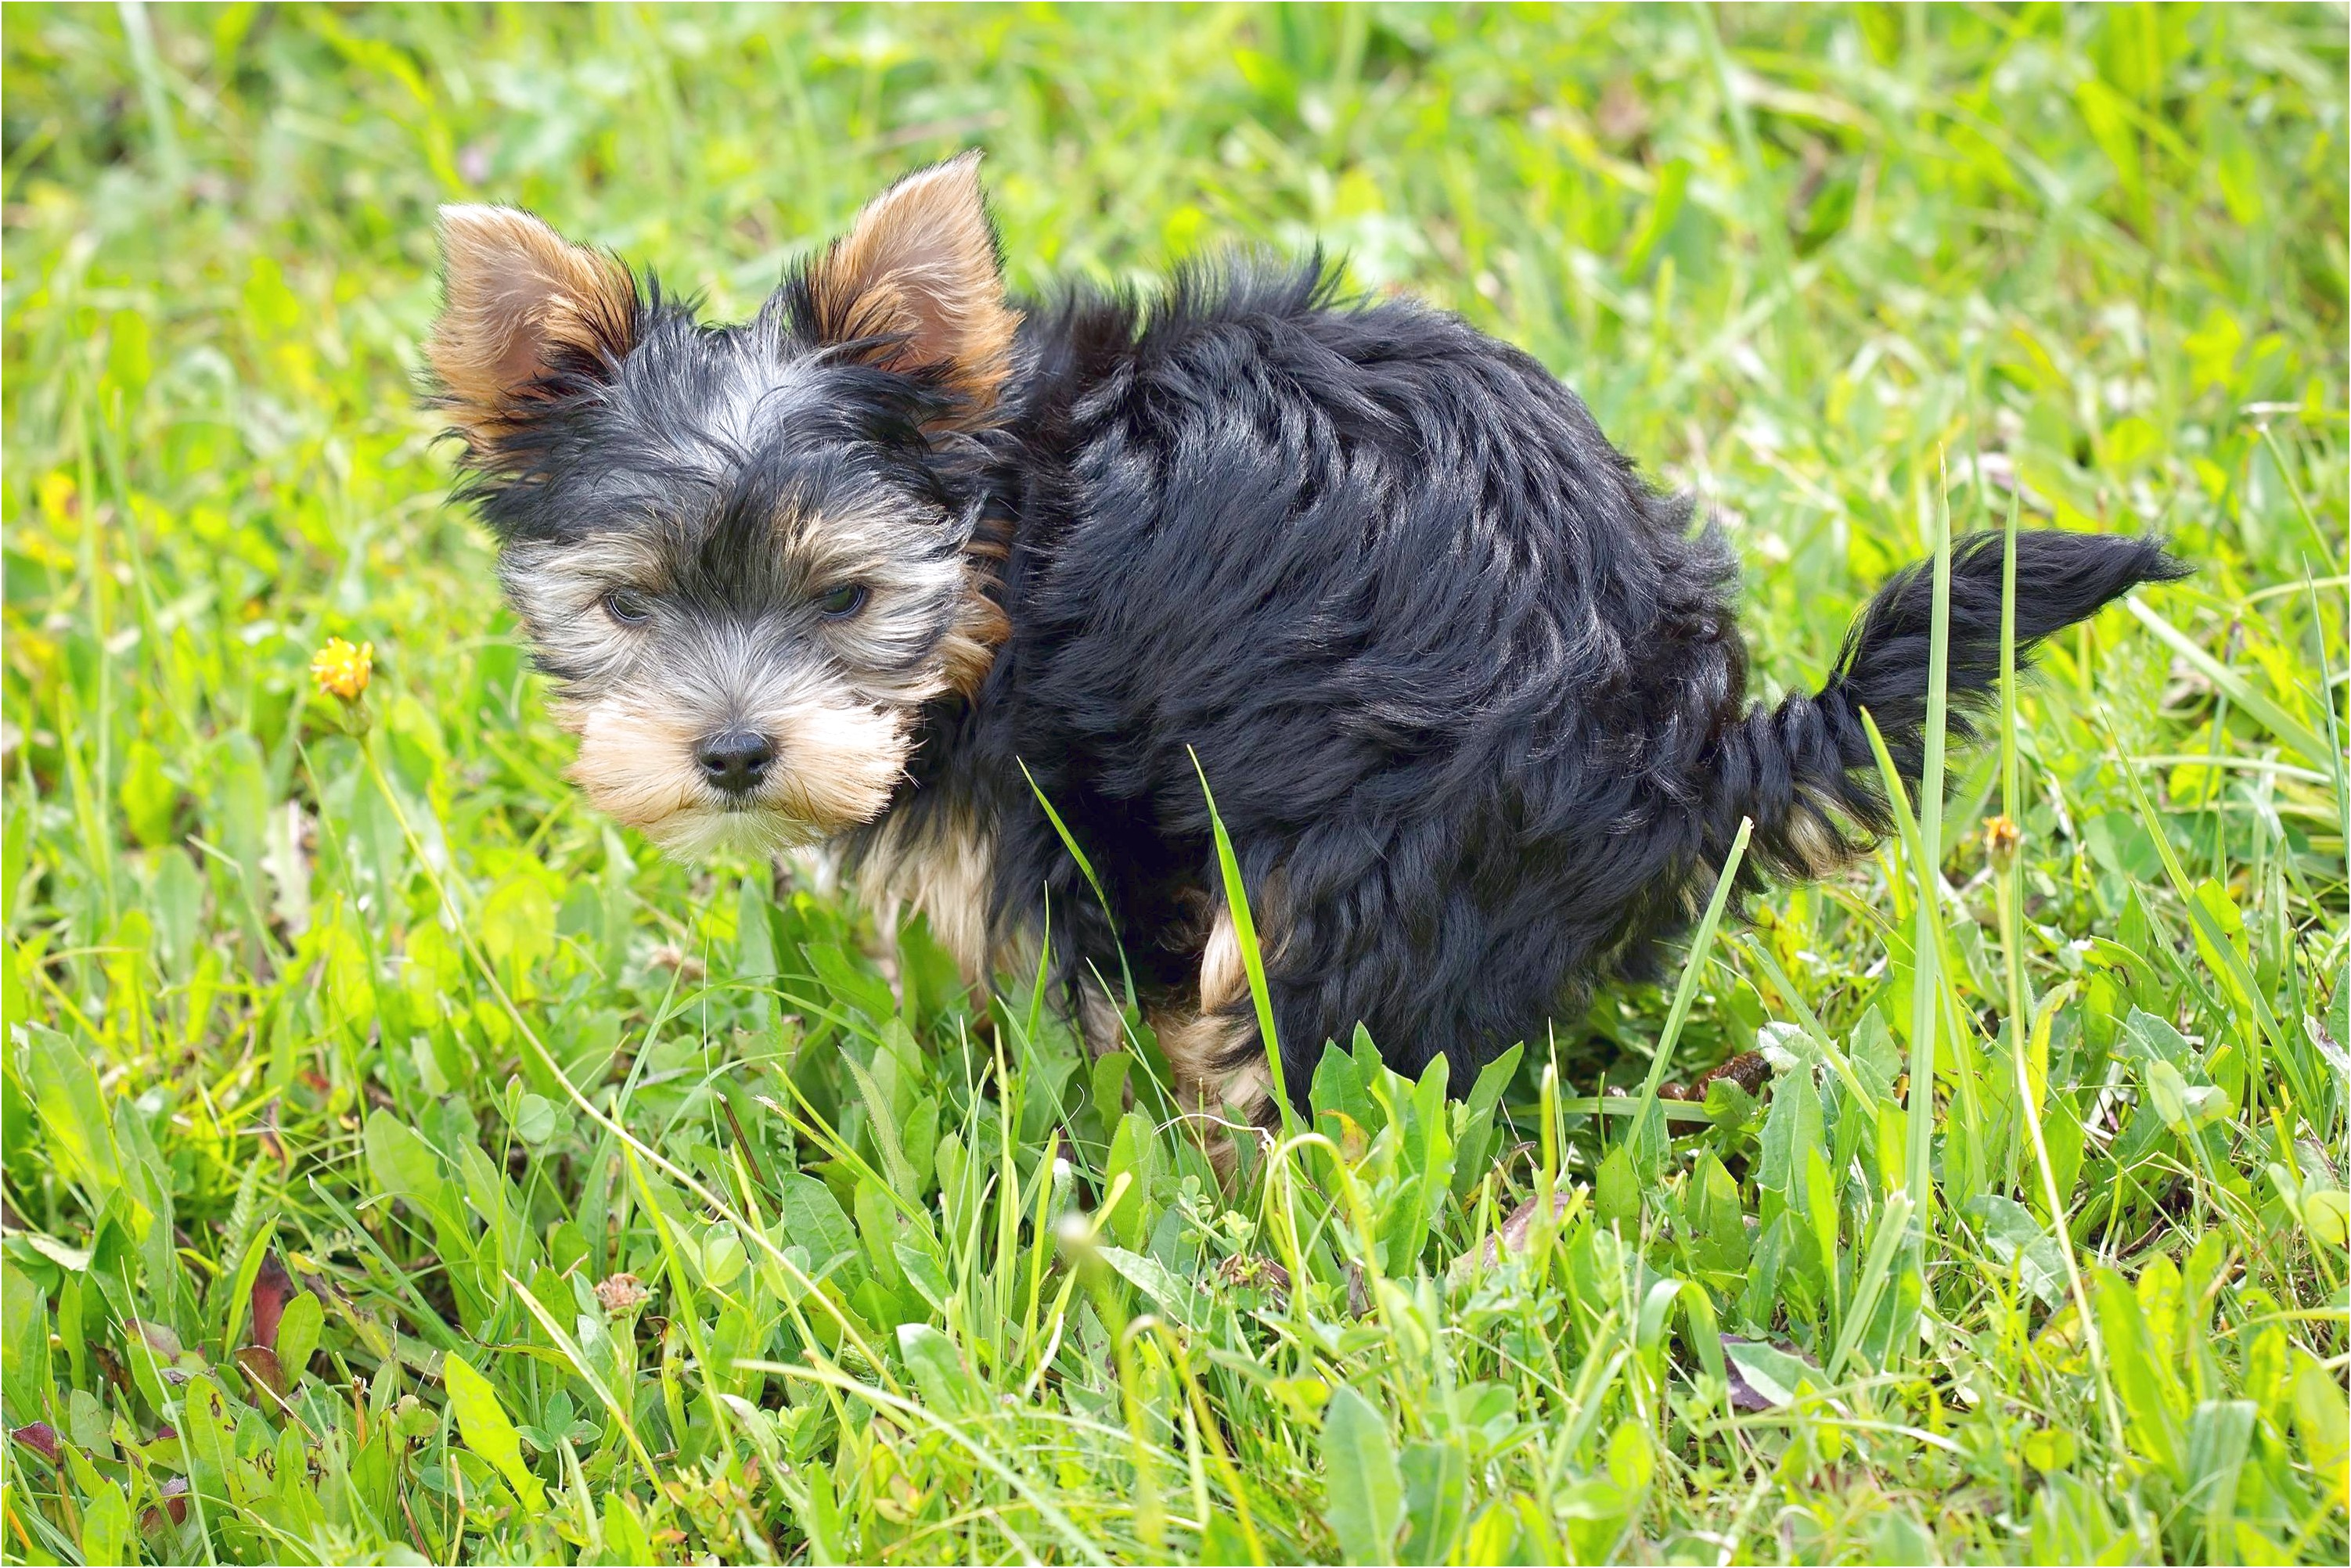 yorkshire terrier puppy eating own poop